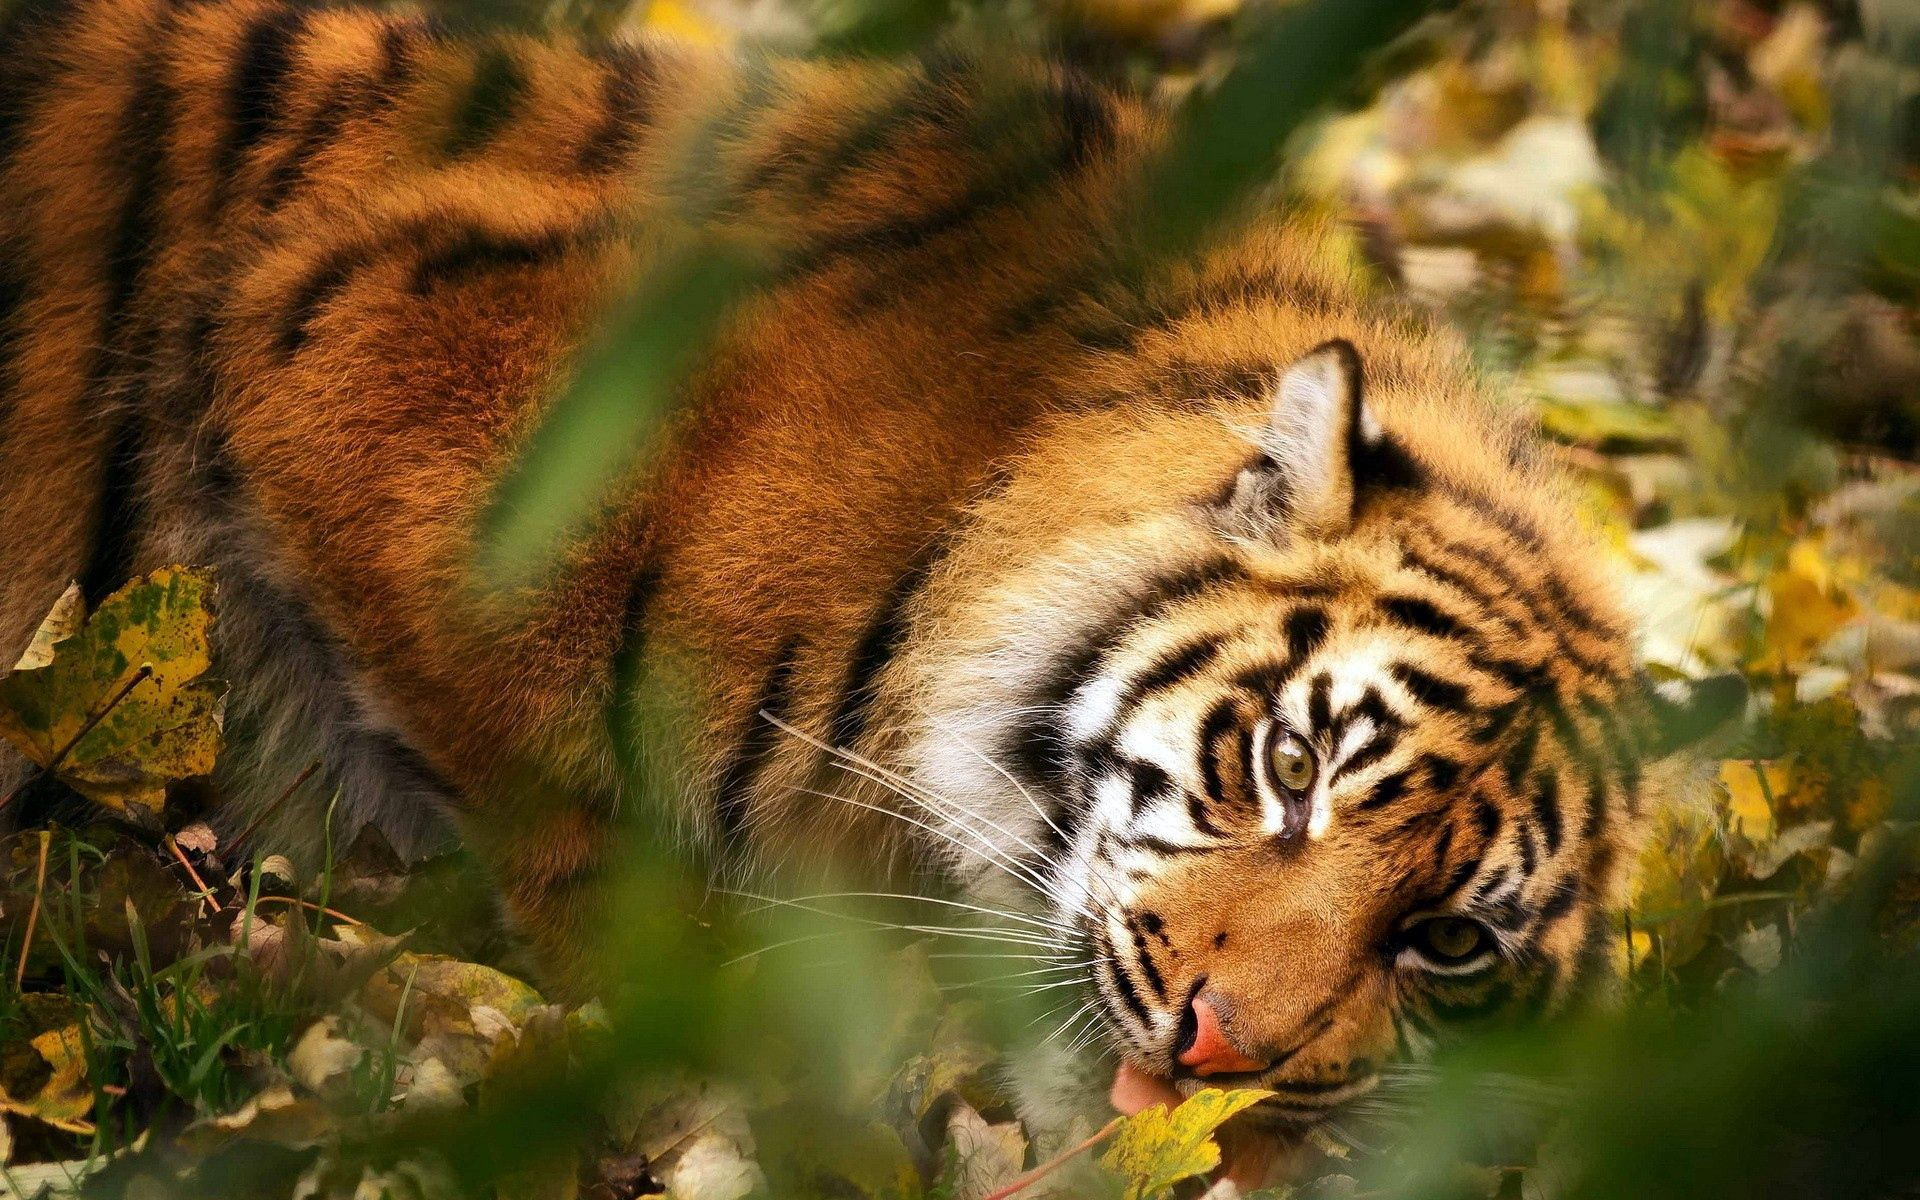 106400 download wallpaper Animals, Tiger, Big Cat, Muzzle, Predator, Grass, Leaves, Blur, Smooth screensavers and pictures for free